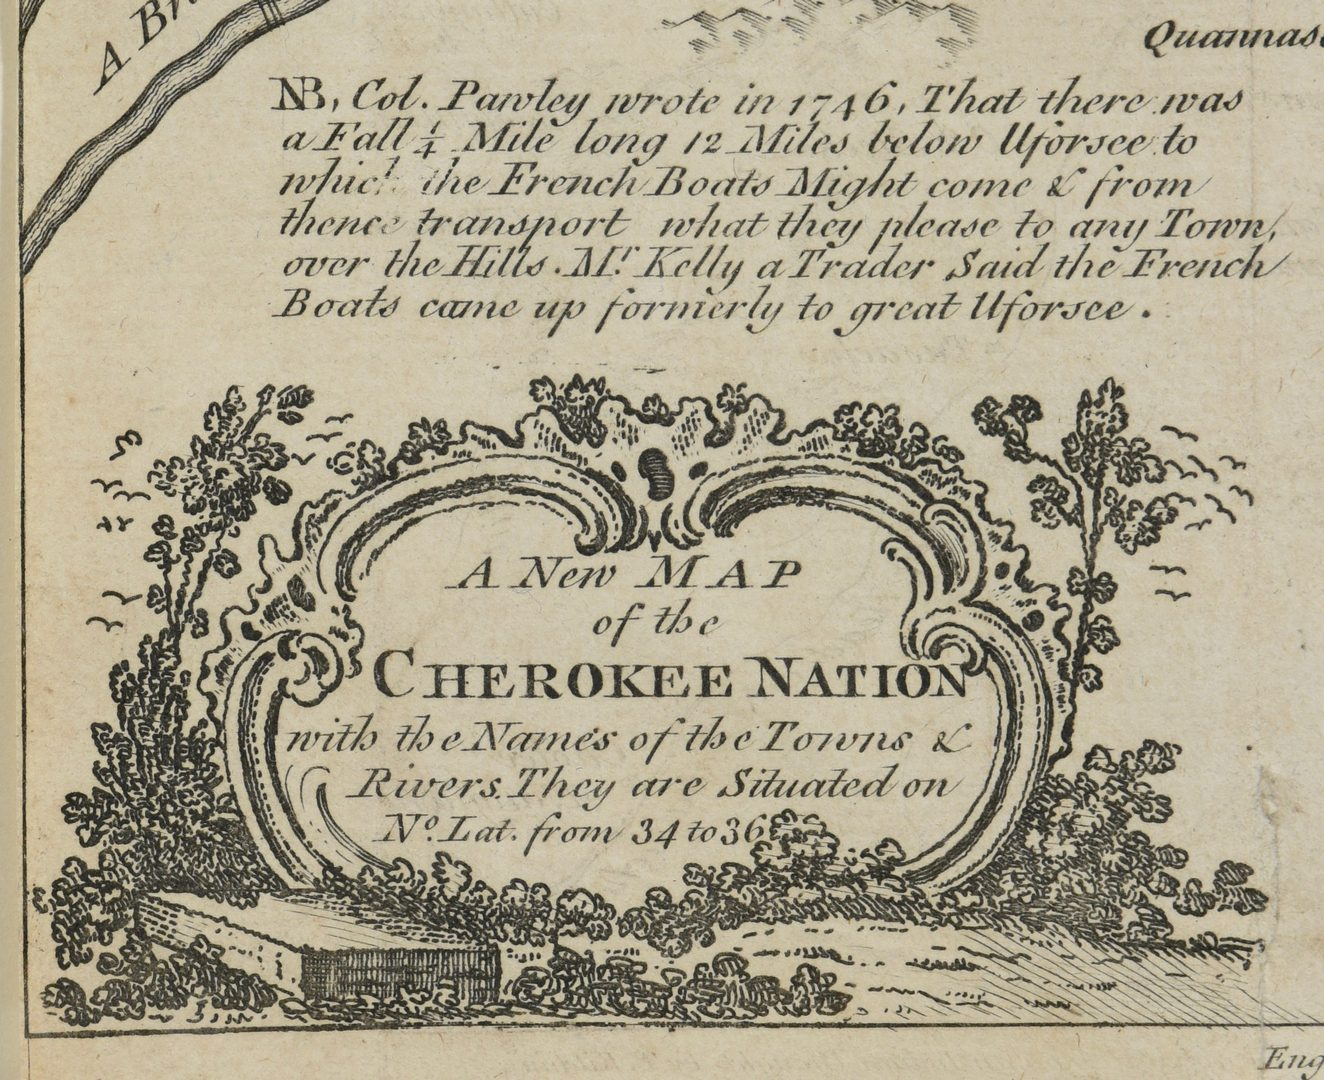 Lot 262: A New Map of the Cherokee Nation, 18th C.